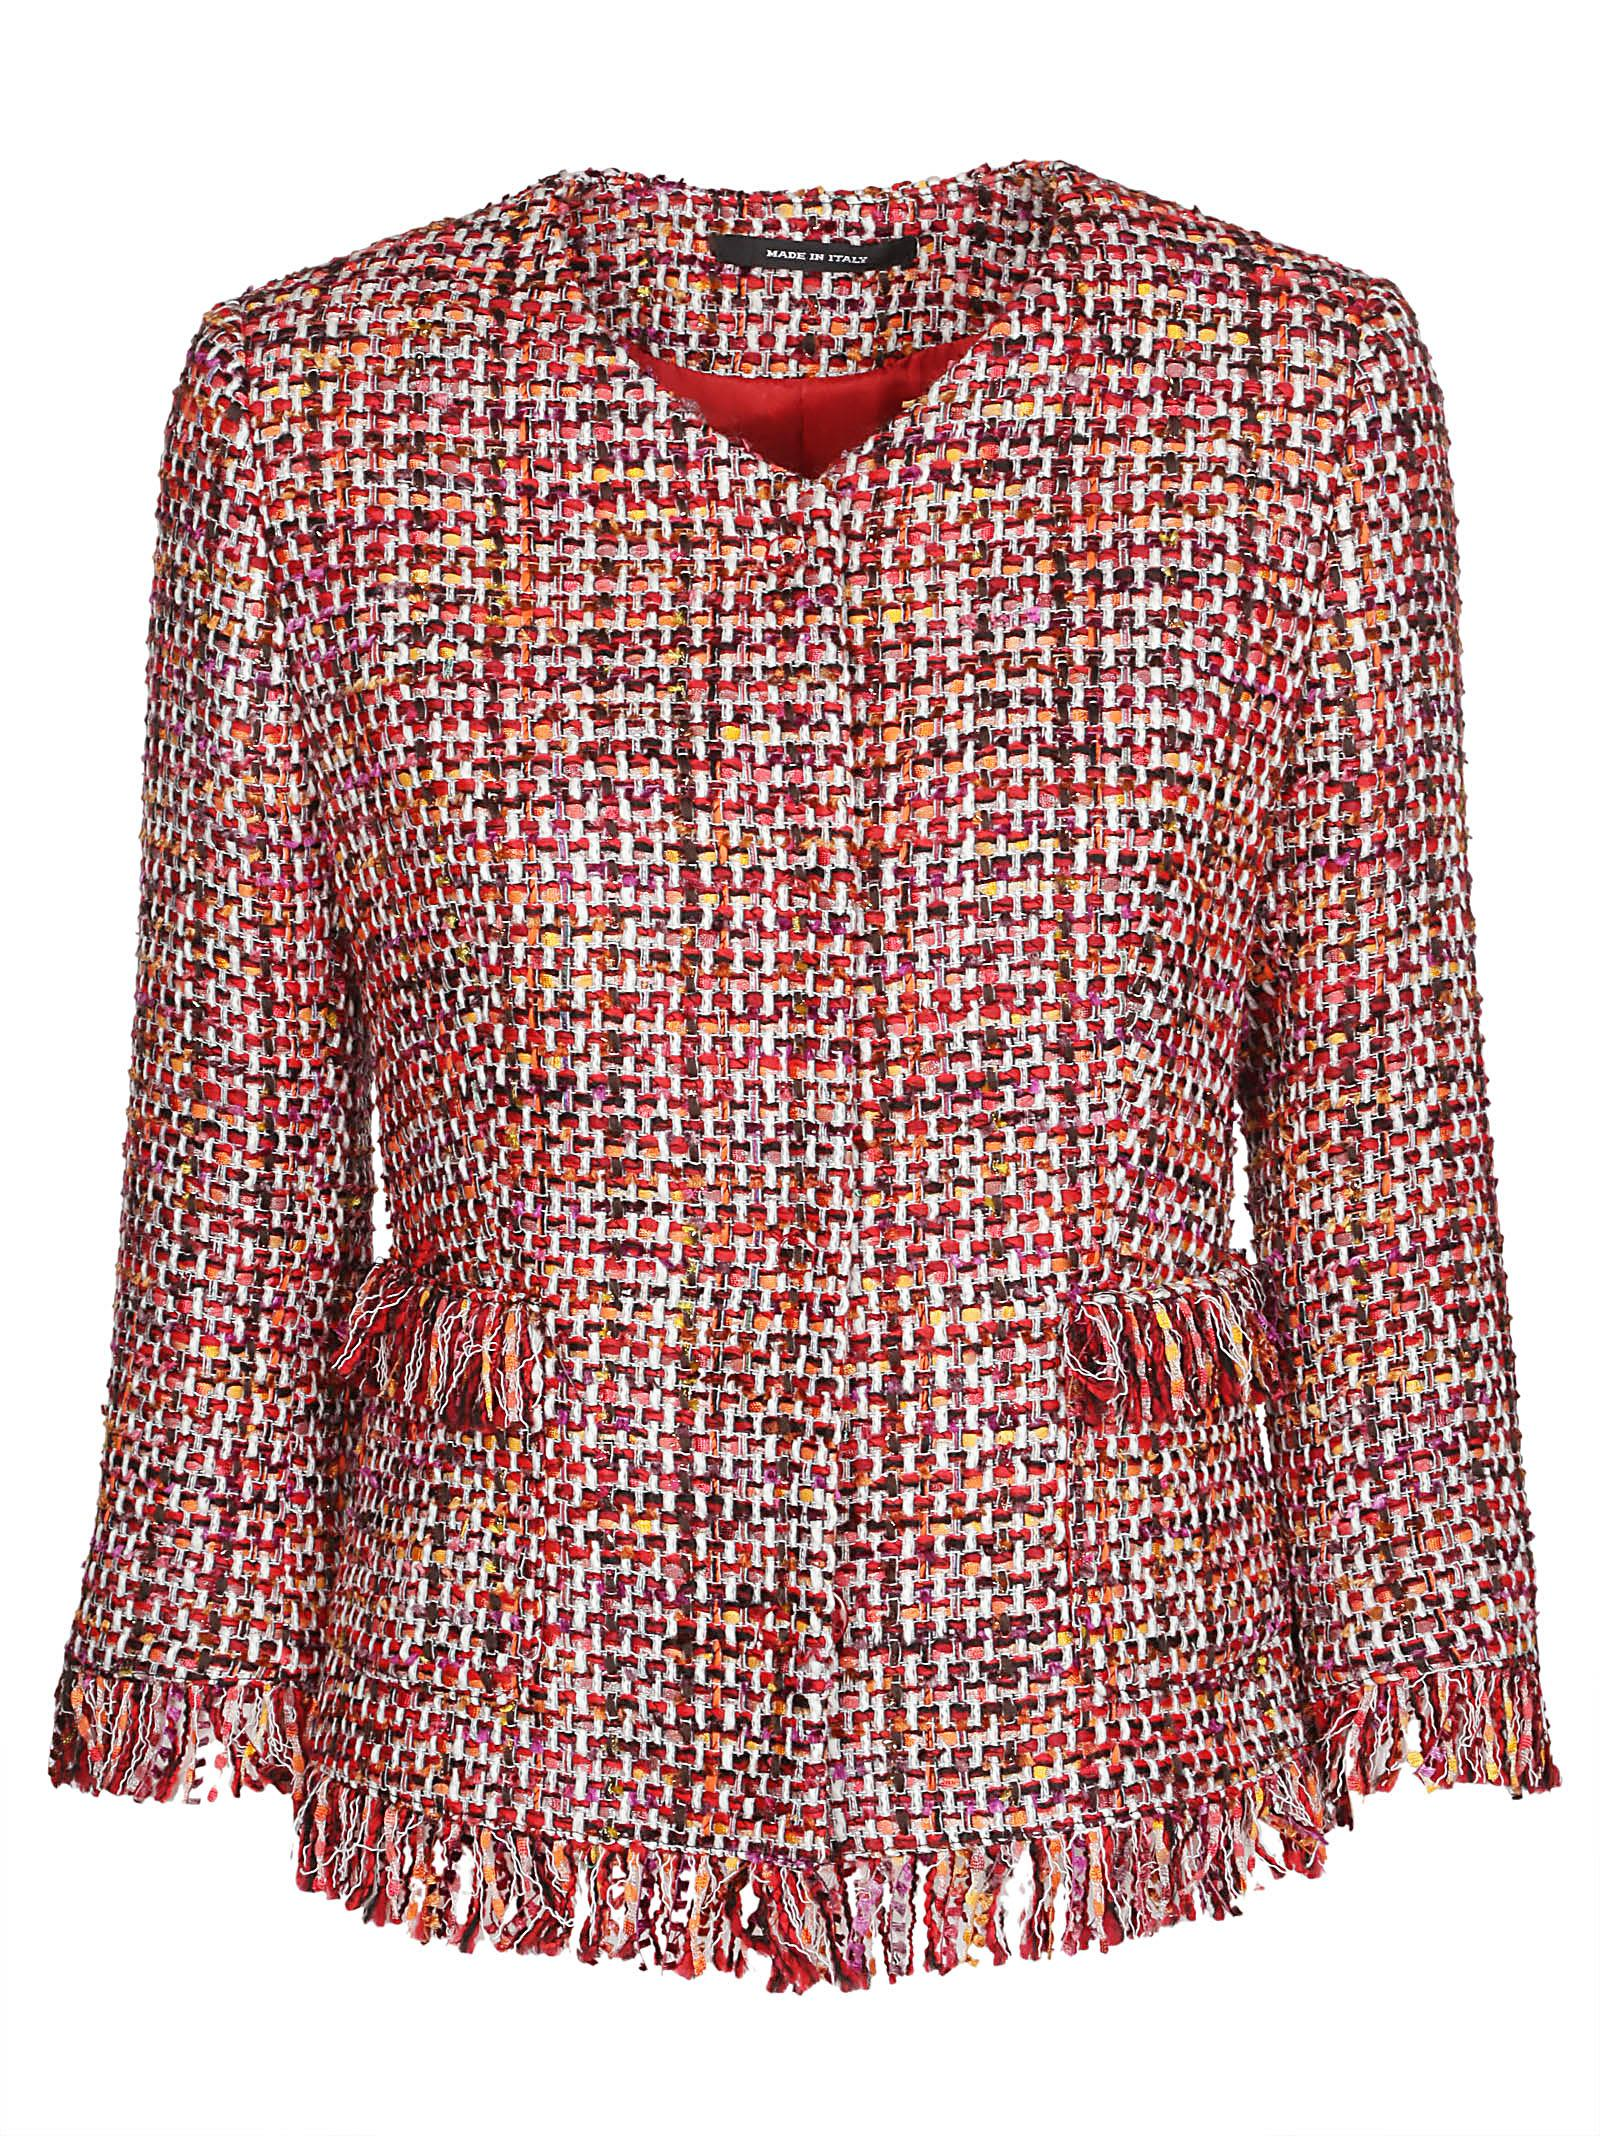 TAGLIATORE Milly Tweed Jacket in Red